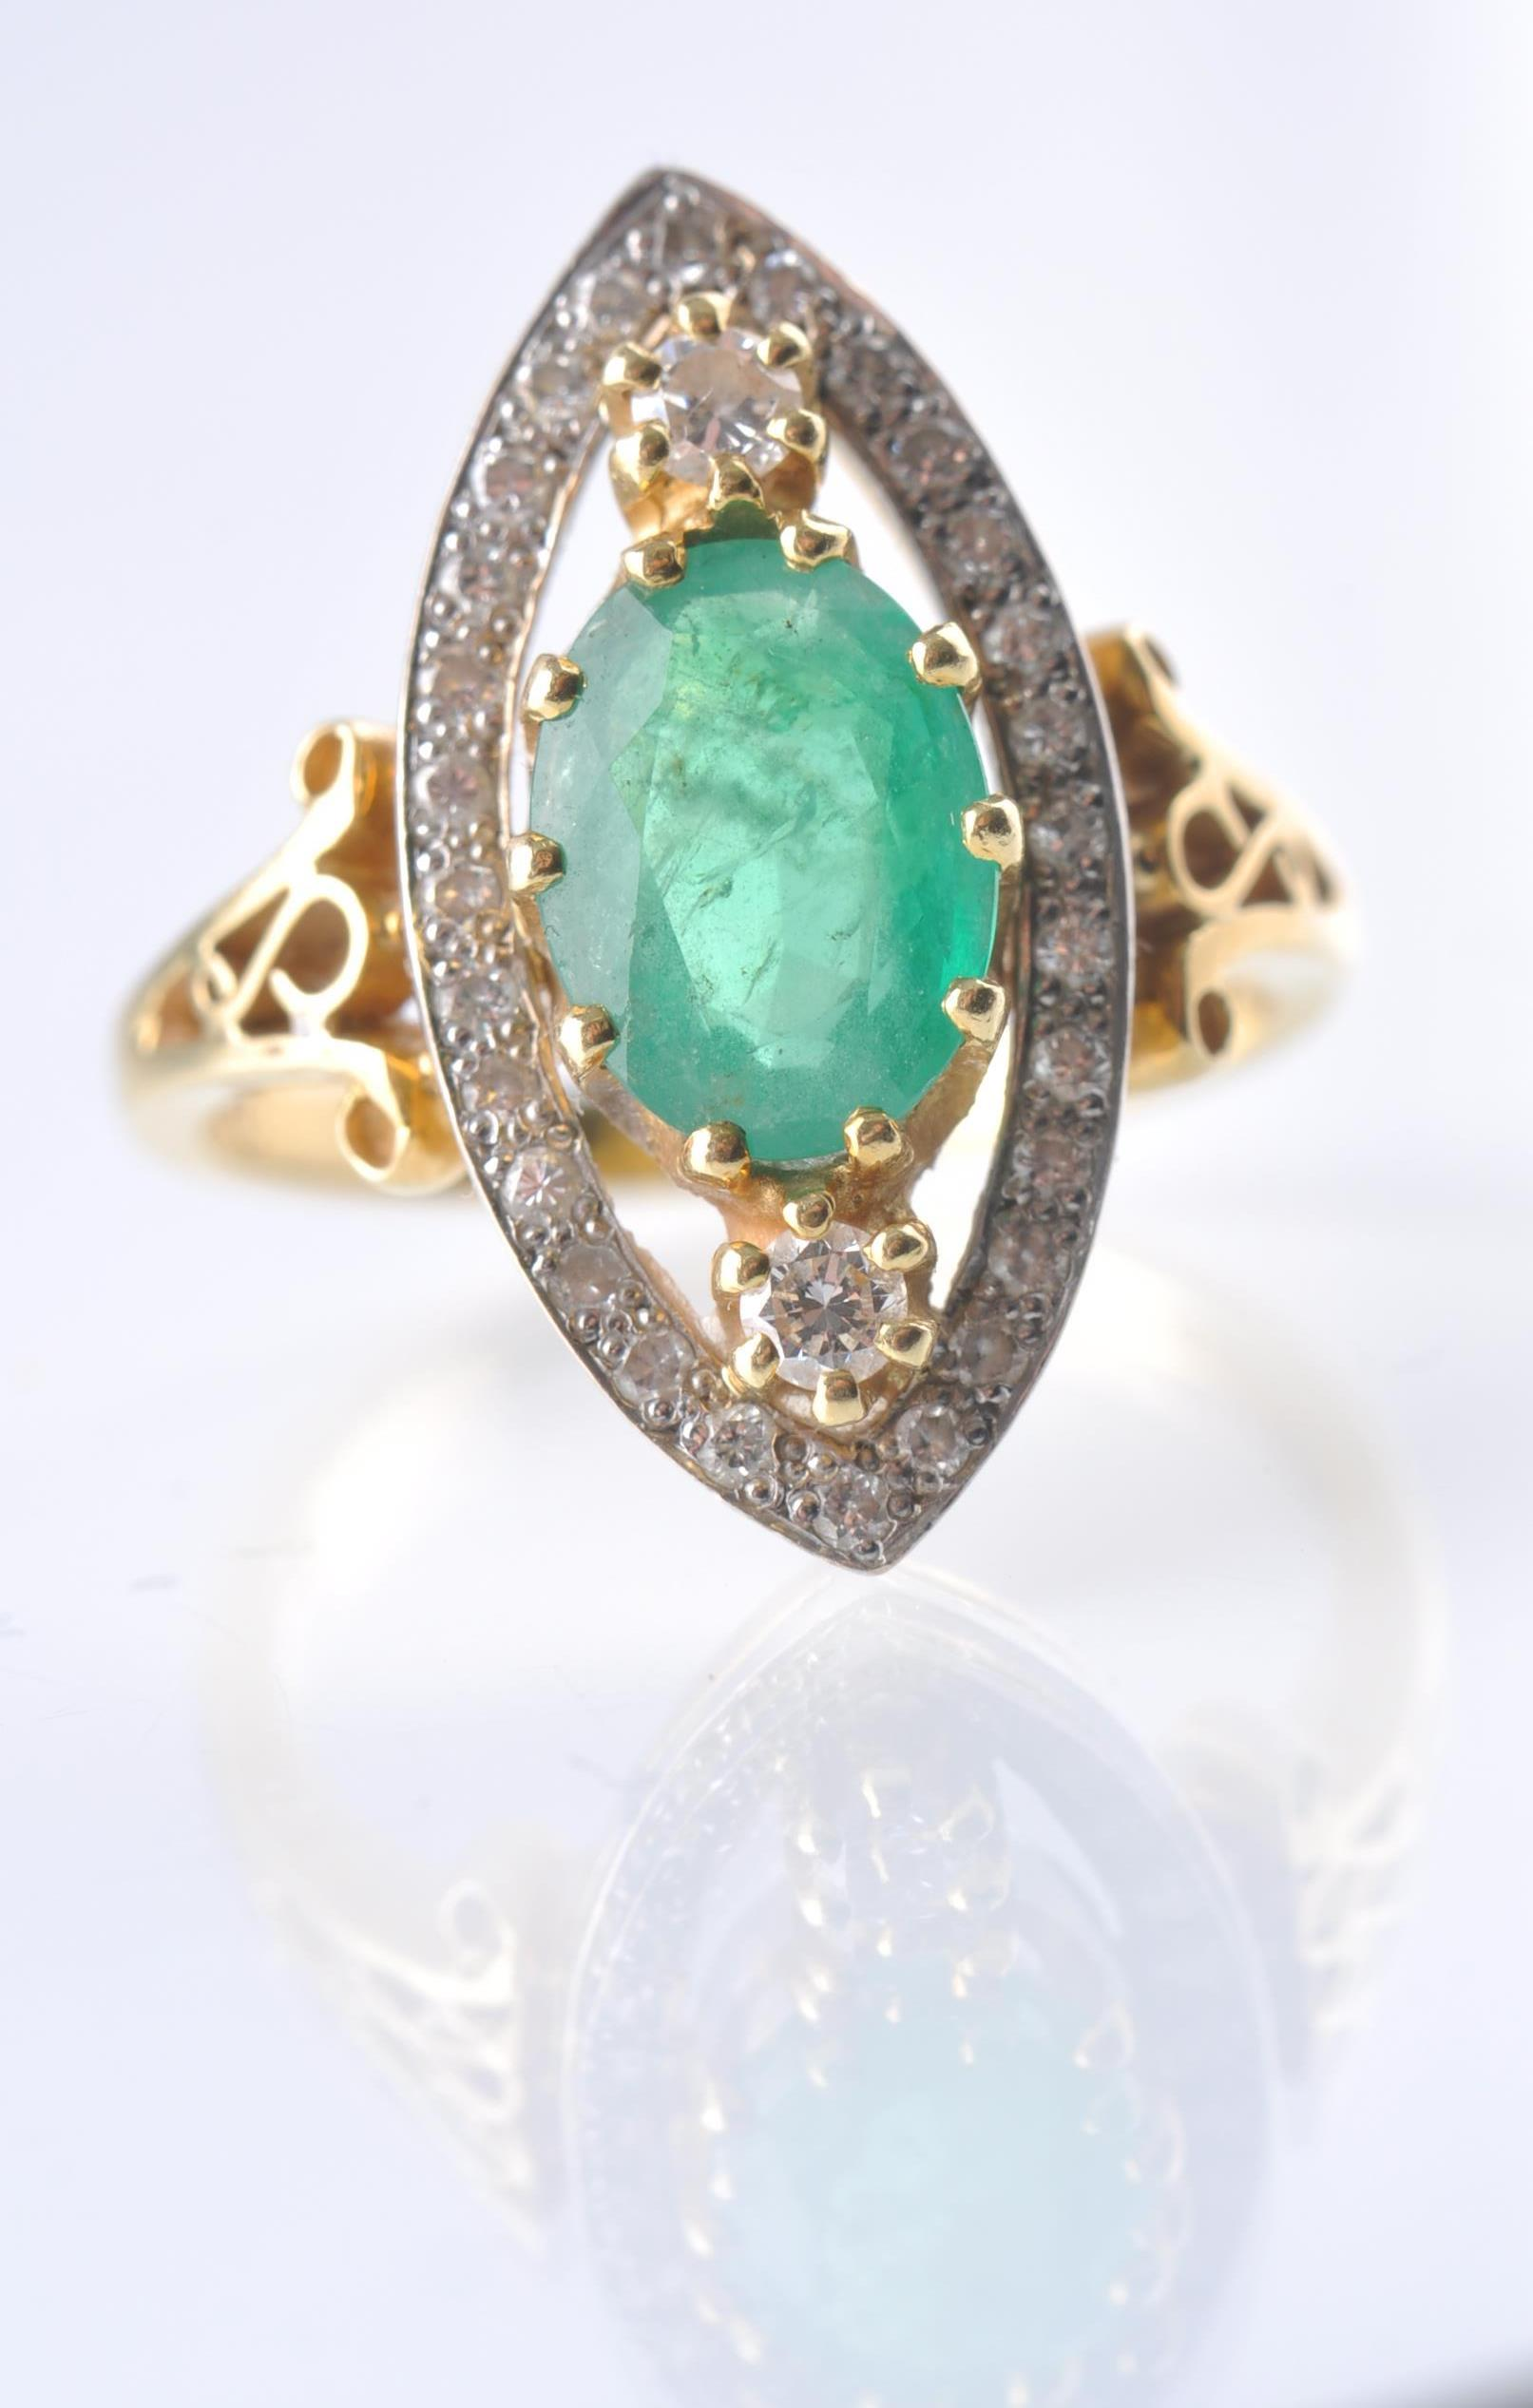 A HALLMARKED 18CT GOD EMERALD AND DIAMOND RING - Image 7 of 11